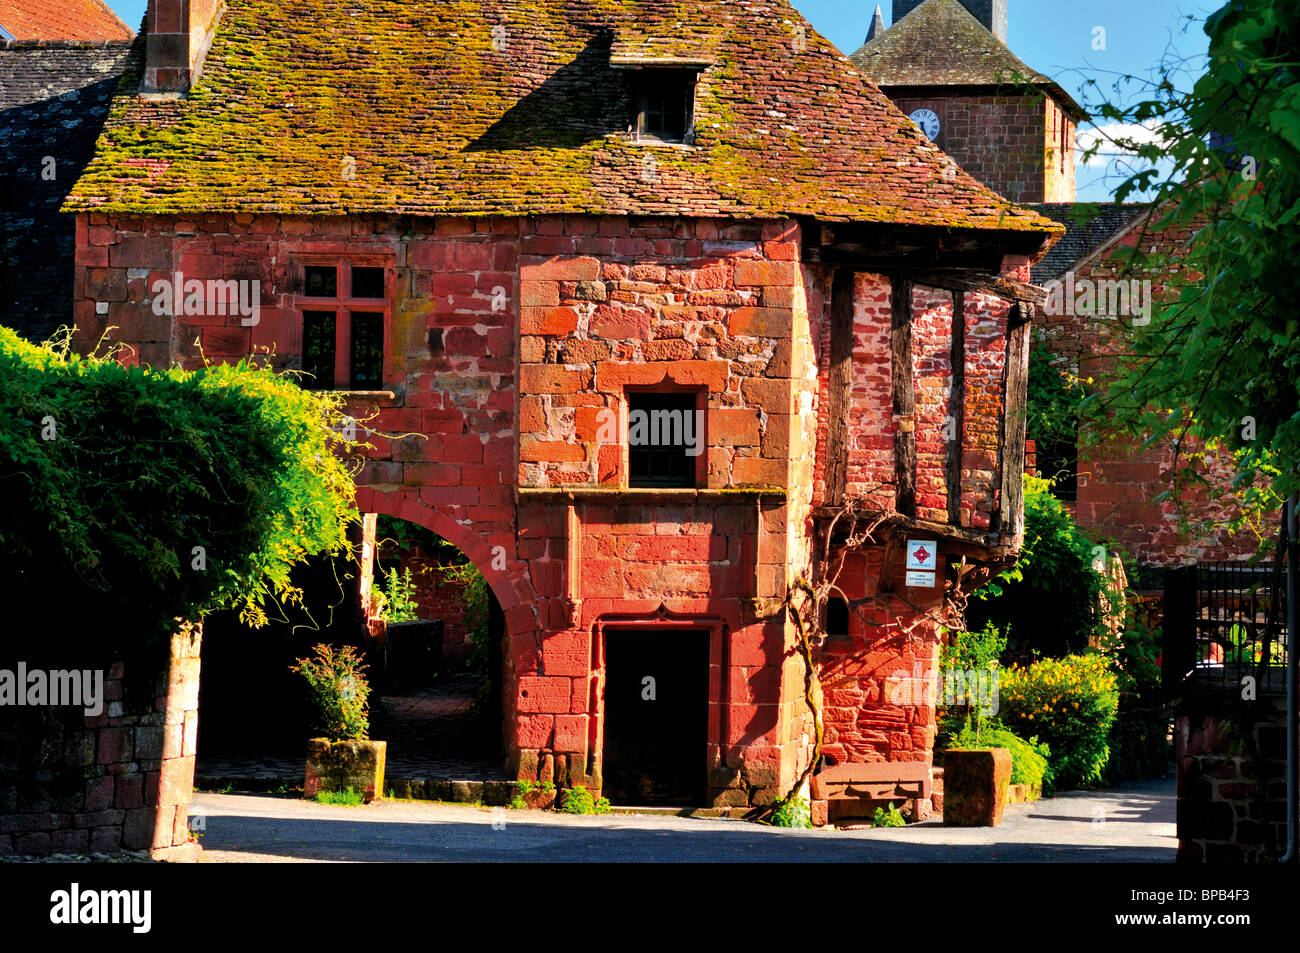 Frankreich: Maison De La Sirene in Collonges-la-Rouge Stockbild